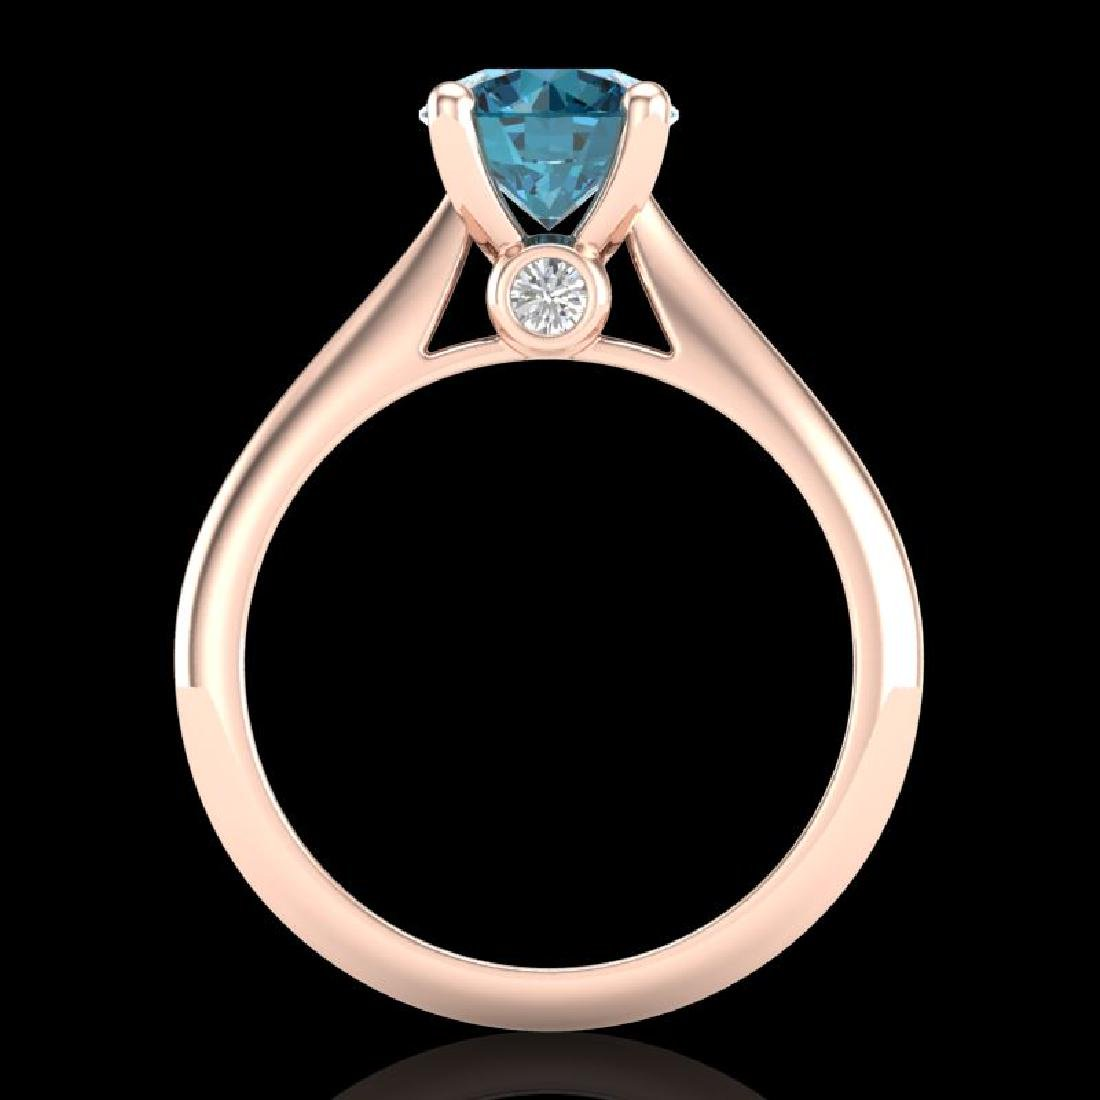 1.6 CTW Intense Blue Diamond Solitaire Engagement Art - 3